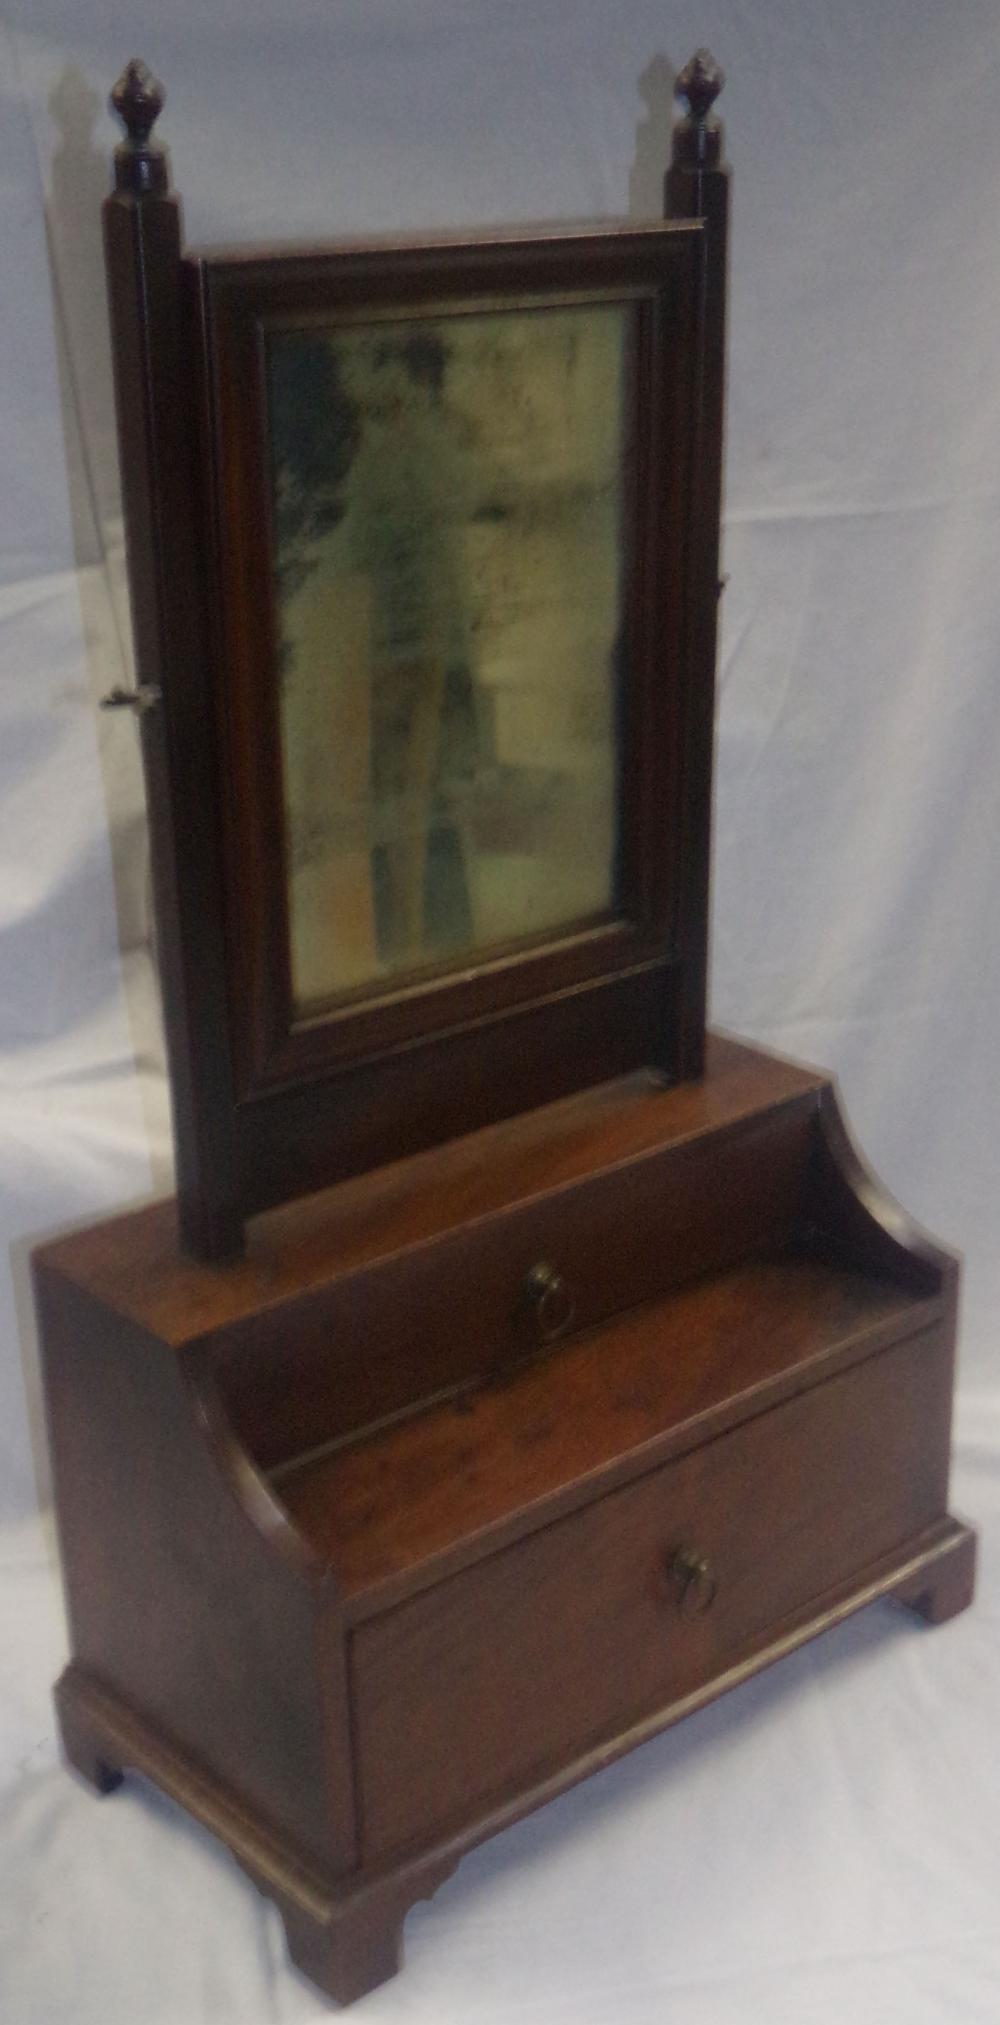 Late 18th/early 19th C Mahogany Shaving Mirror